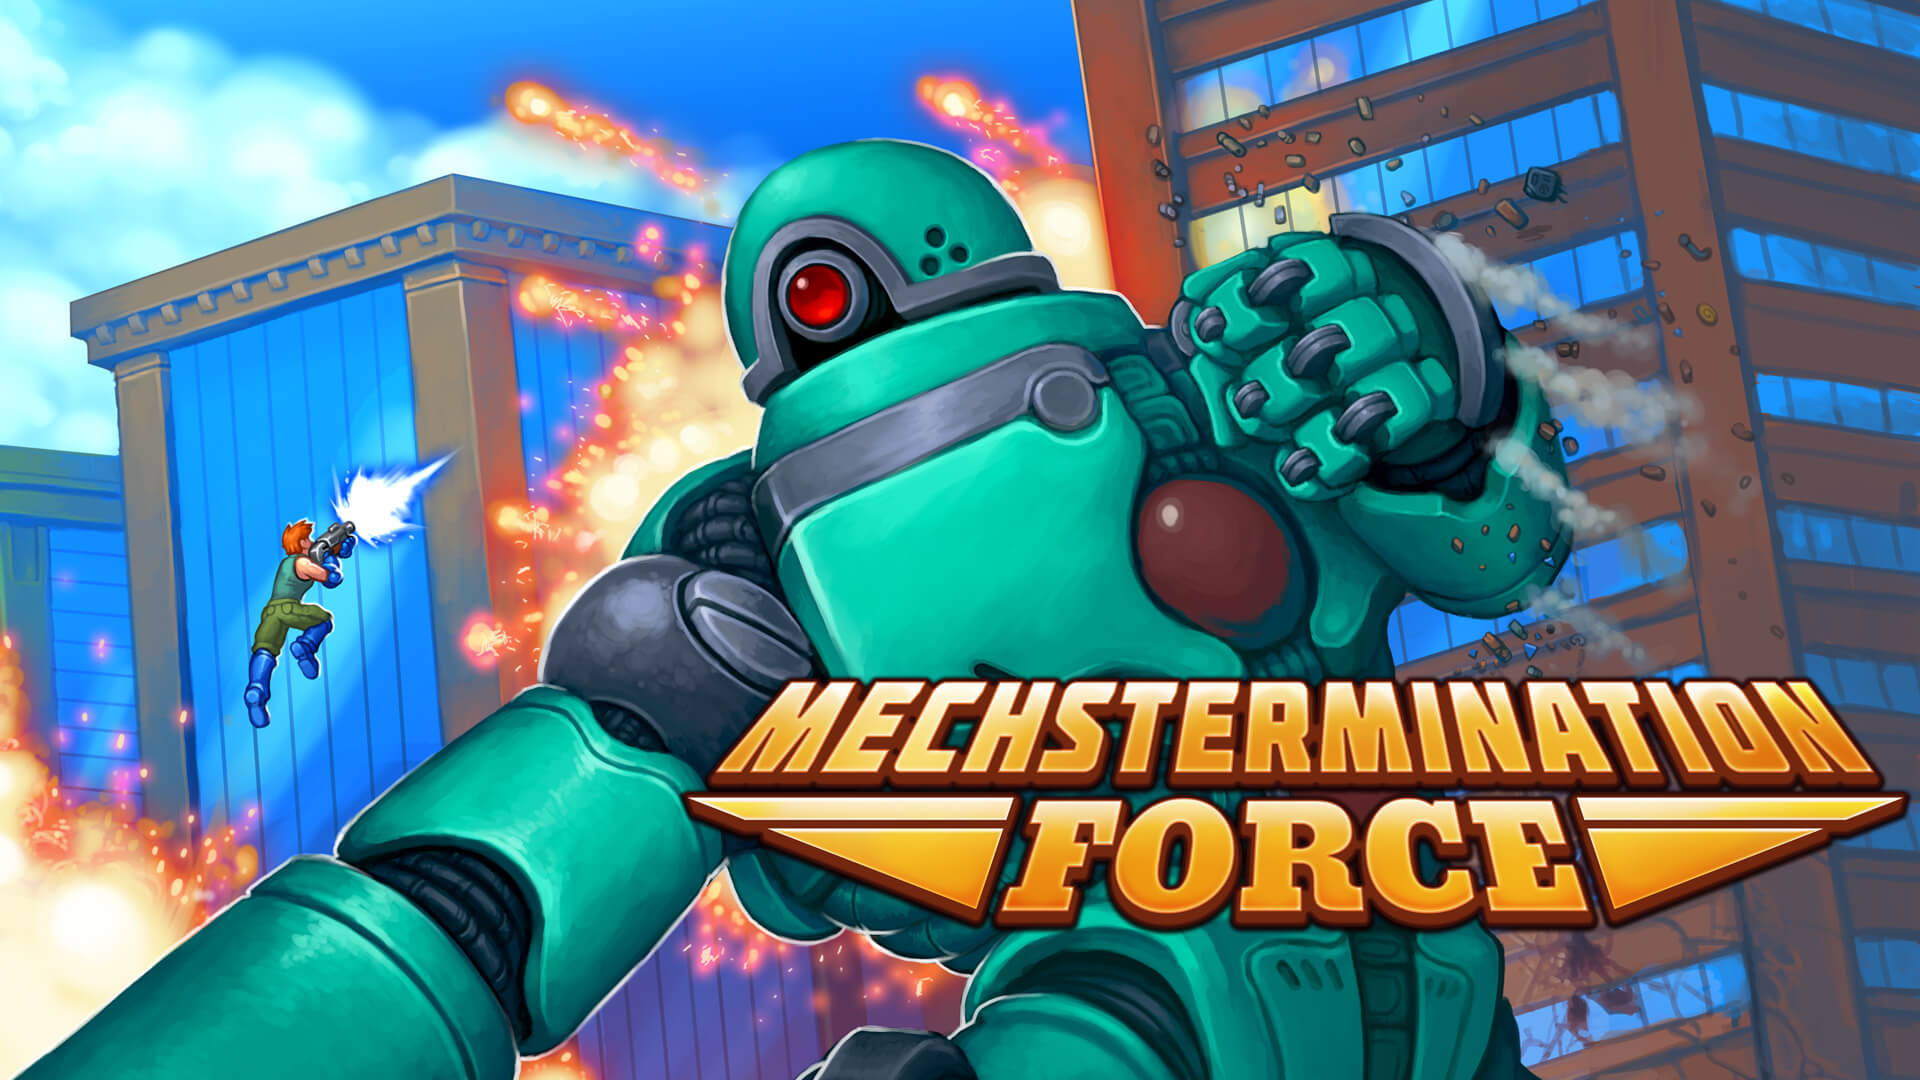 Mechstermination Force Free PC Download